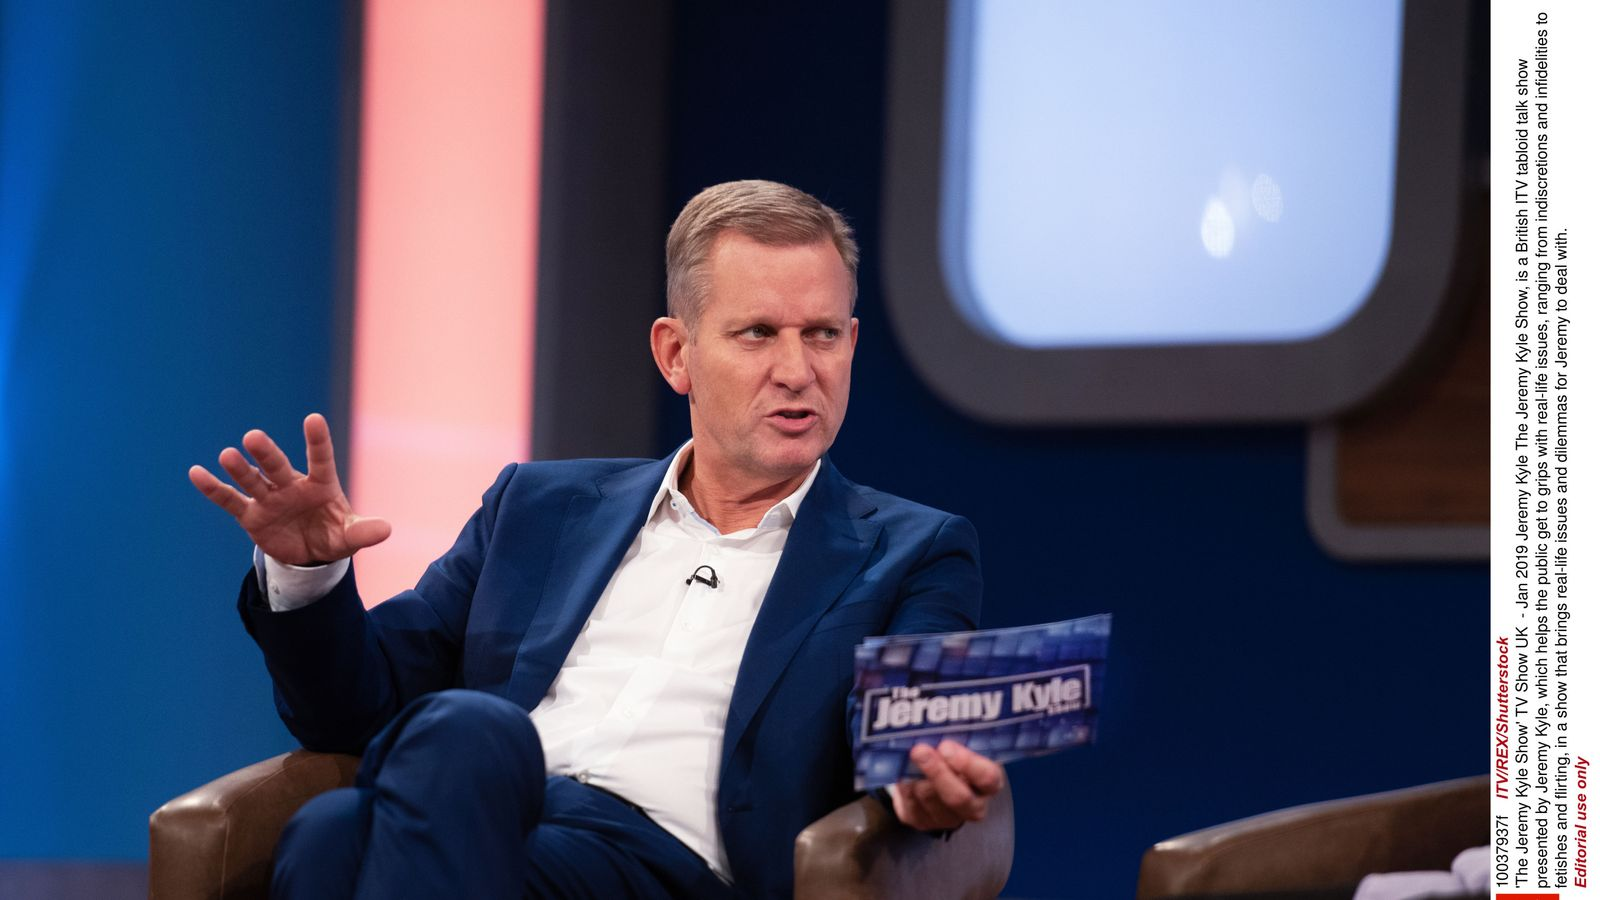 Jeremy Kyle Show axed by ITV after death of guest Steve Dymond